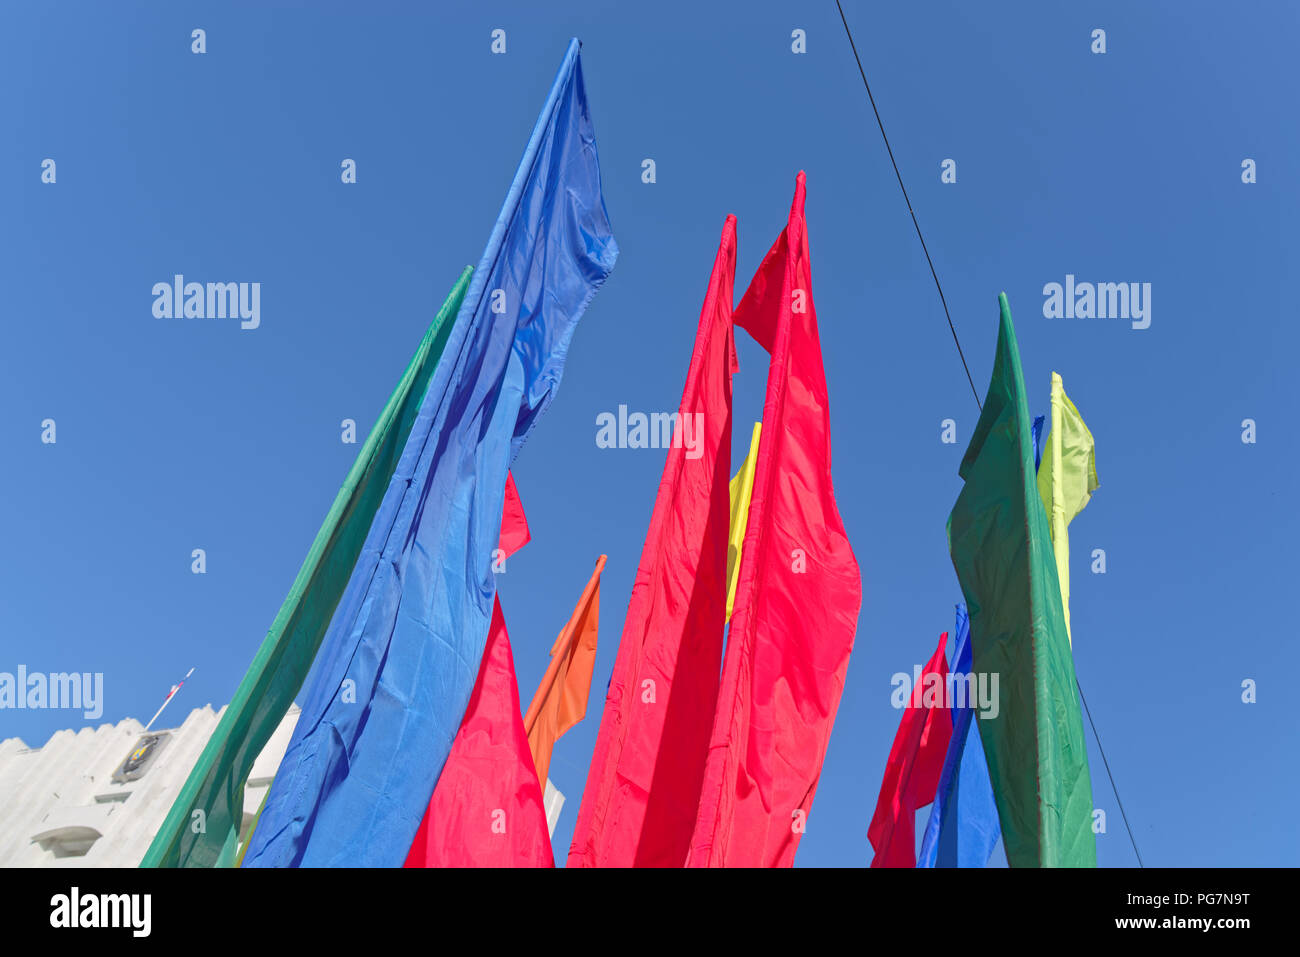 Colorful flags against clear blue sky in the city Khabarovsk, Russia - Stock Image